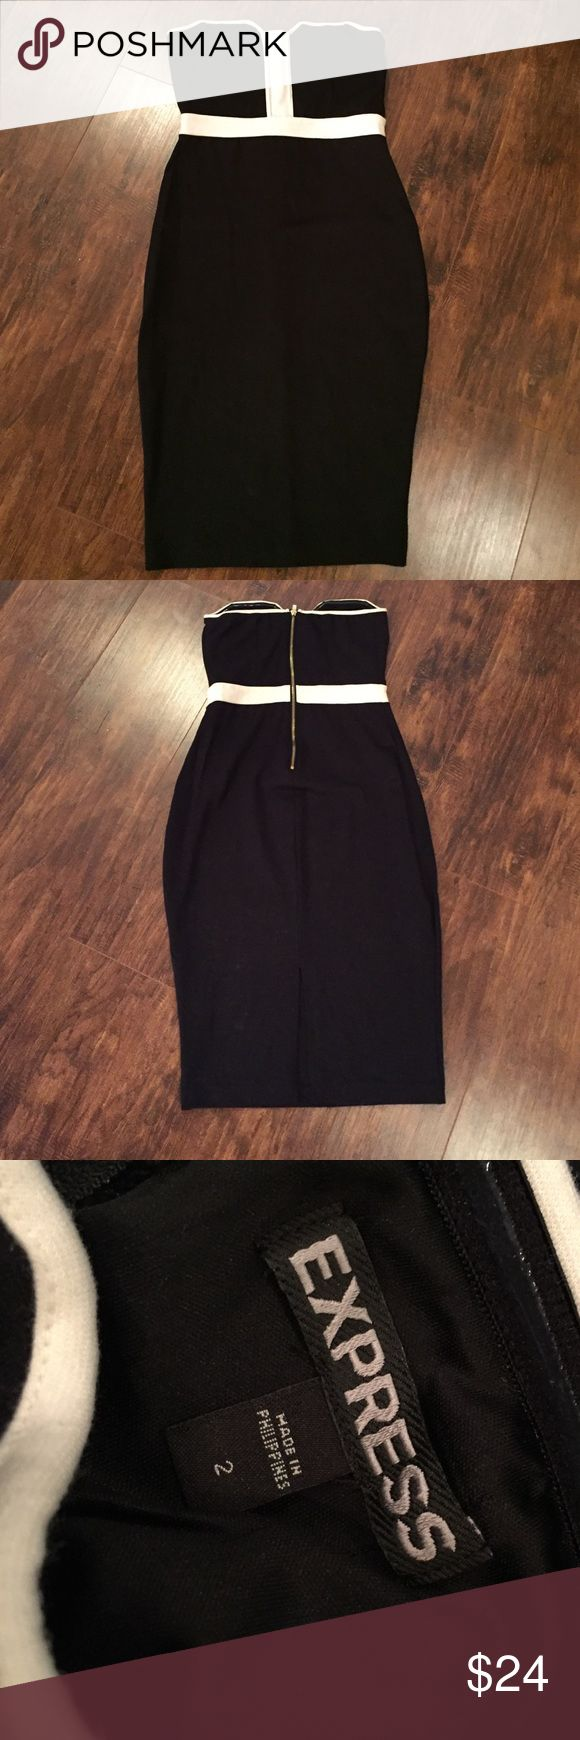 Express black and white bodycon dress Express bodycon dress. Size 2. Worn once for an event. Slit in back of dress. Strapless black and white dress. Express Dresses Strapless